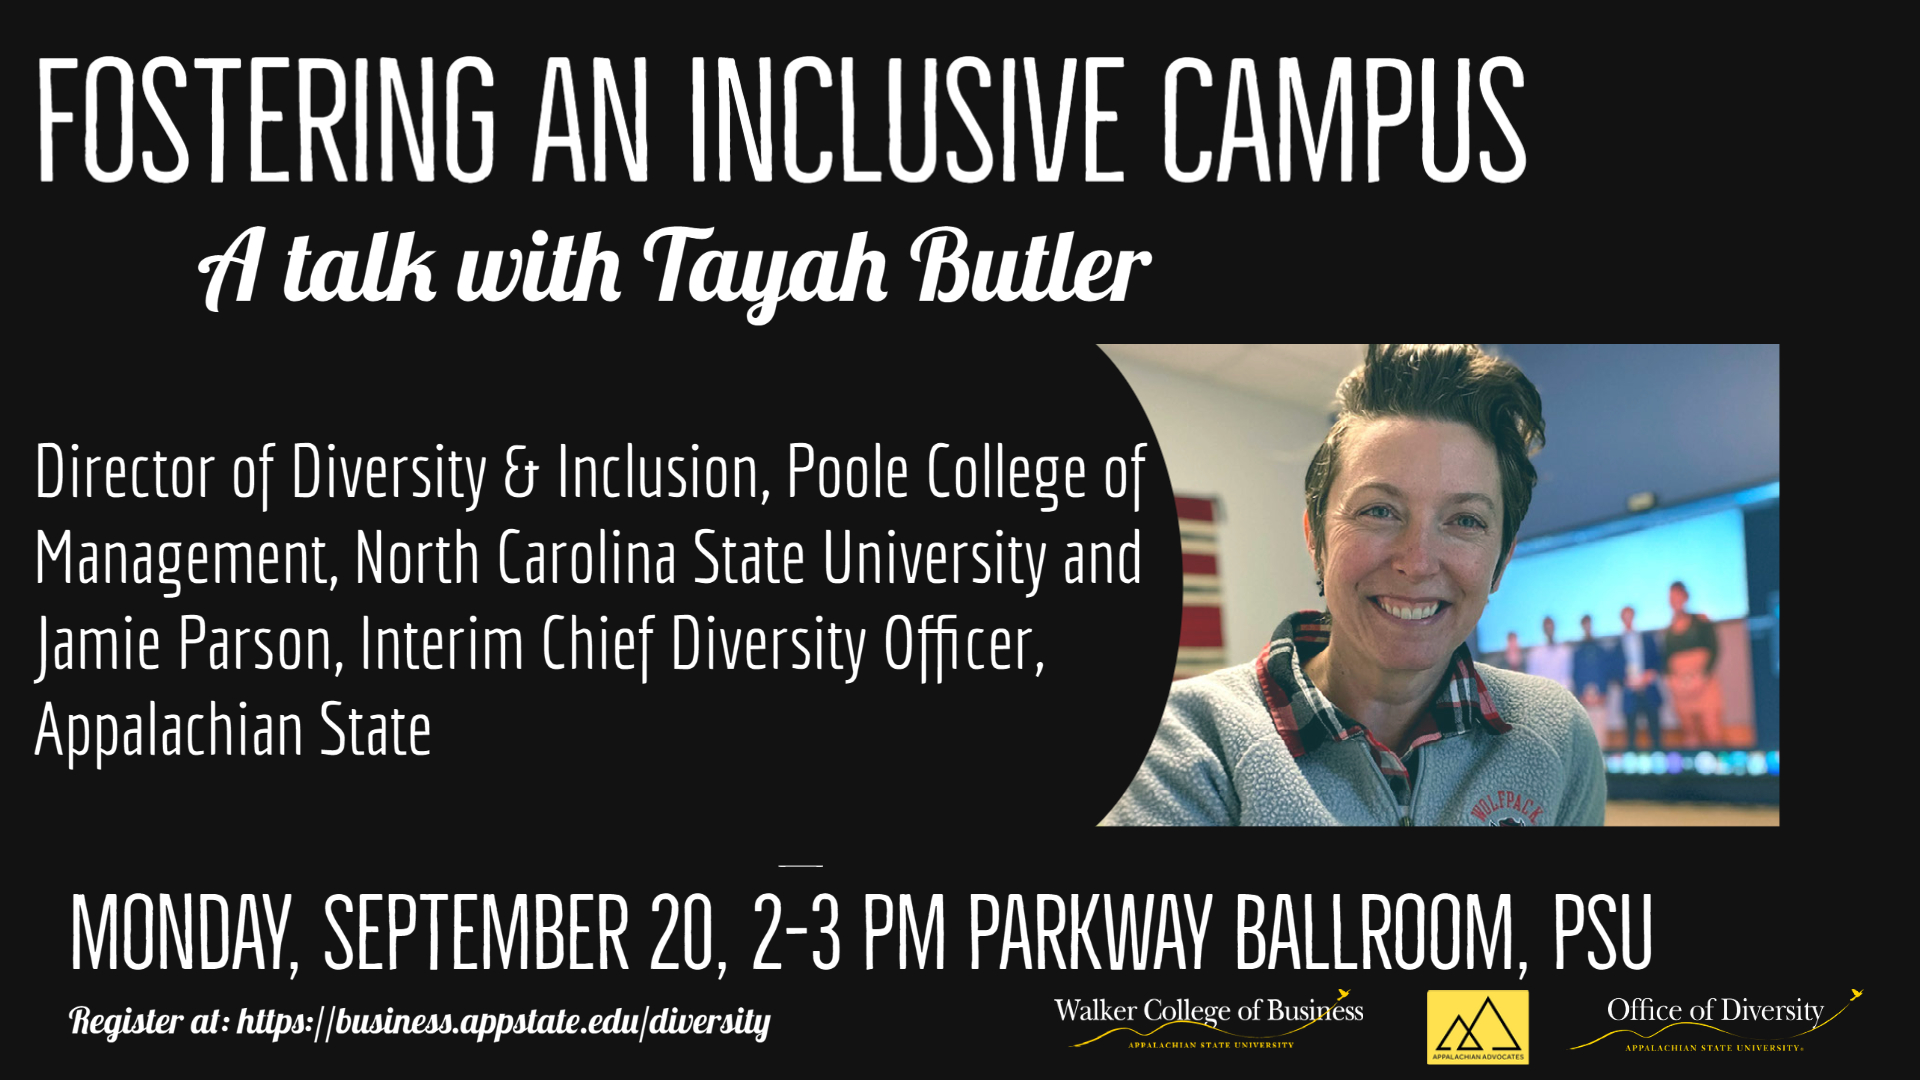 Registration: Fostering an Inclusive Campus: A Talk with Tayah Butler